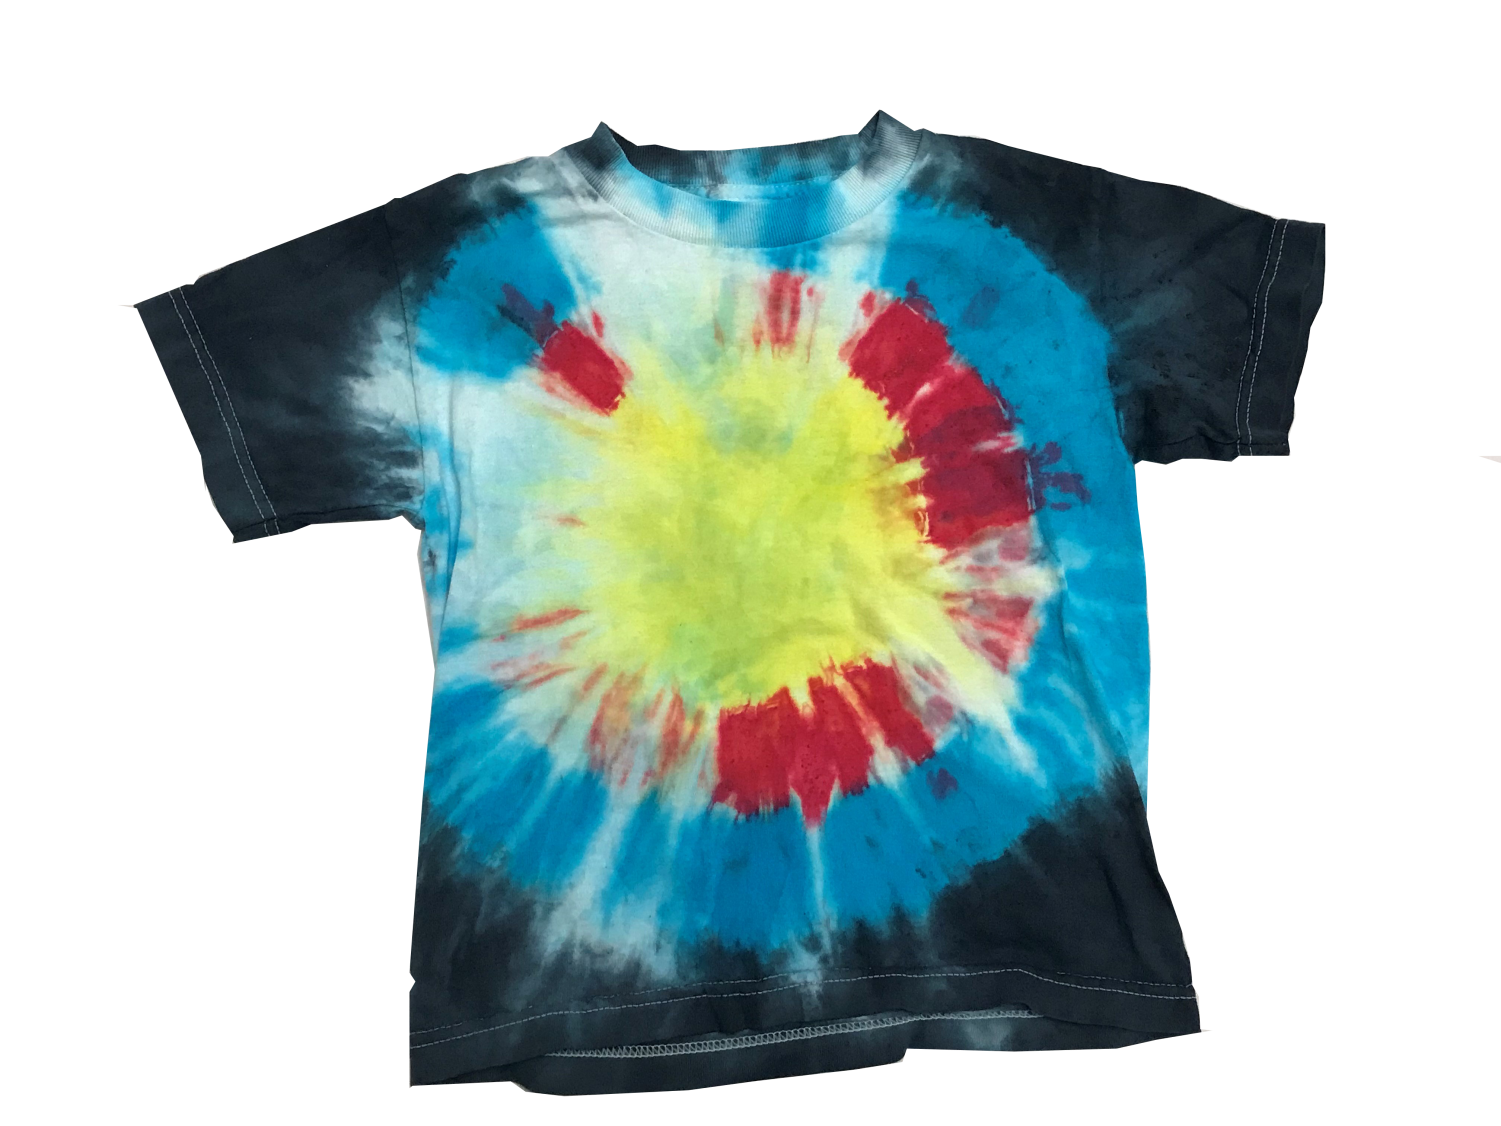 Tie-dye shirts are making a comeback as a throwback fashion trend.